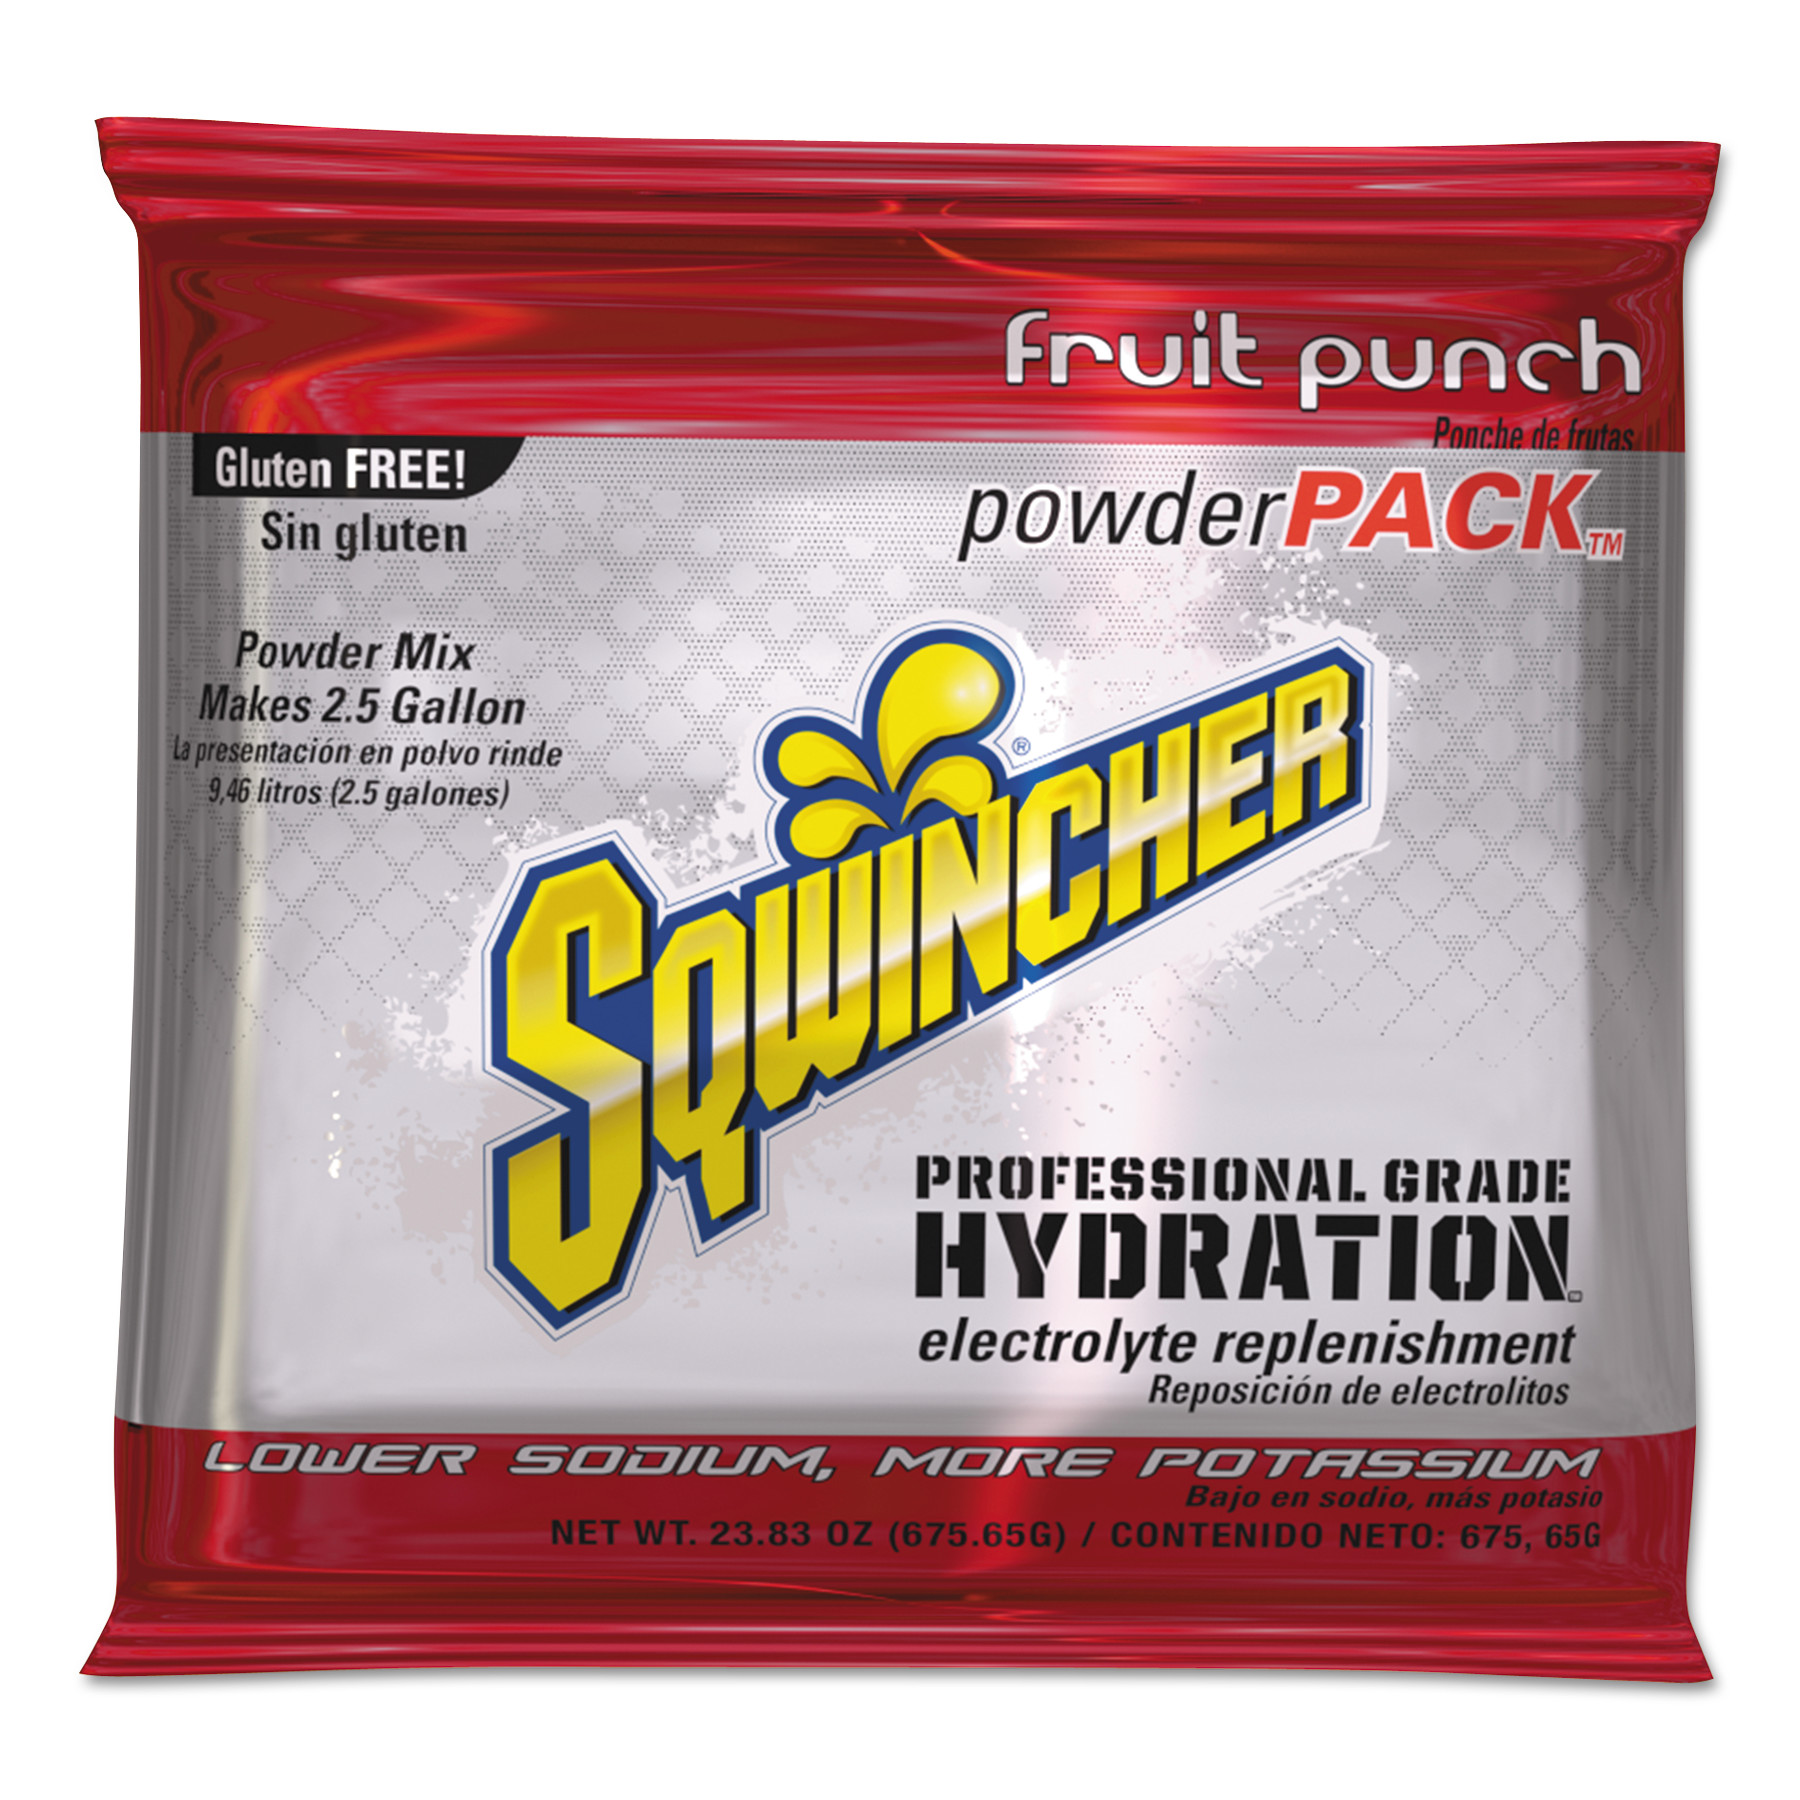 Sqwincher Drink Mix, Fruit Punch, 23.83 Oz, 32 count